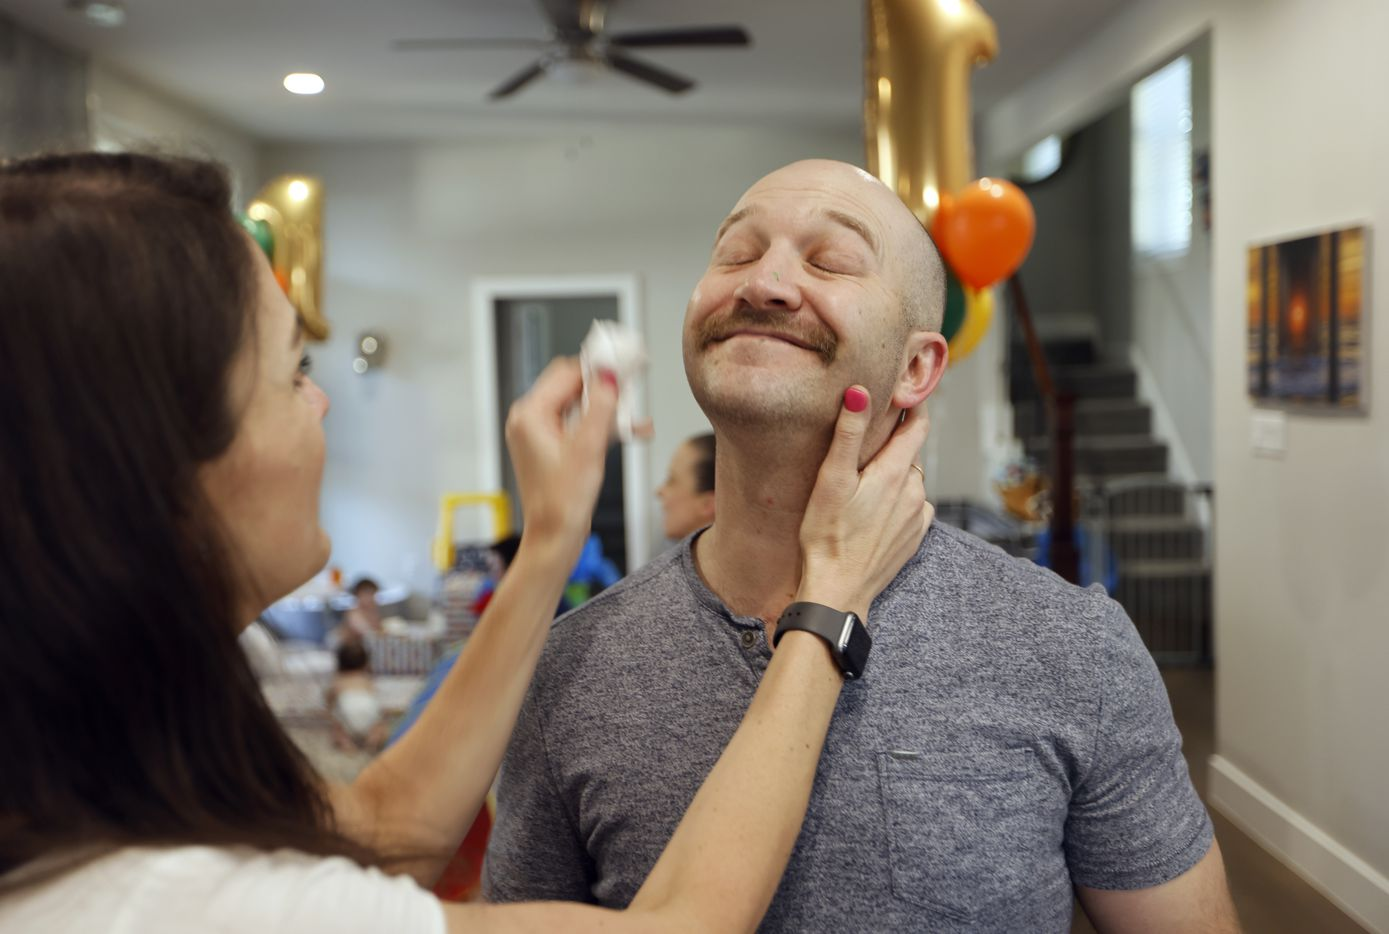 Jenny Marr wipes icing off the face of Chris Marr during their kid's one year birthday party at their home on Monday, March 15, 2021in Grapevine, Texas.